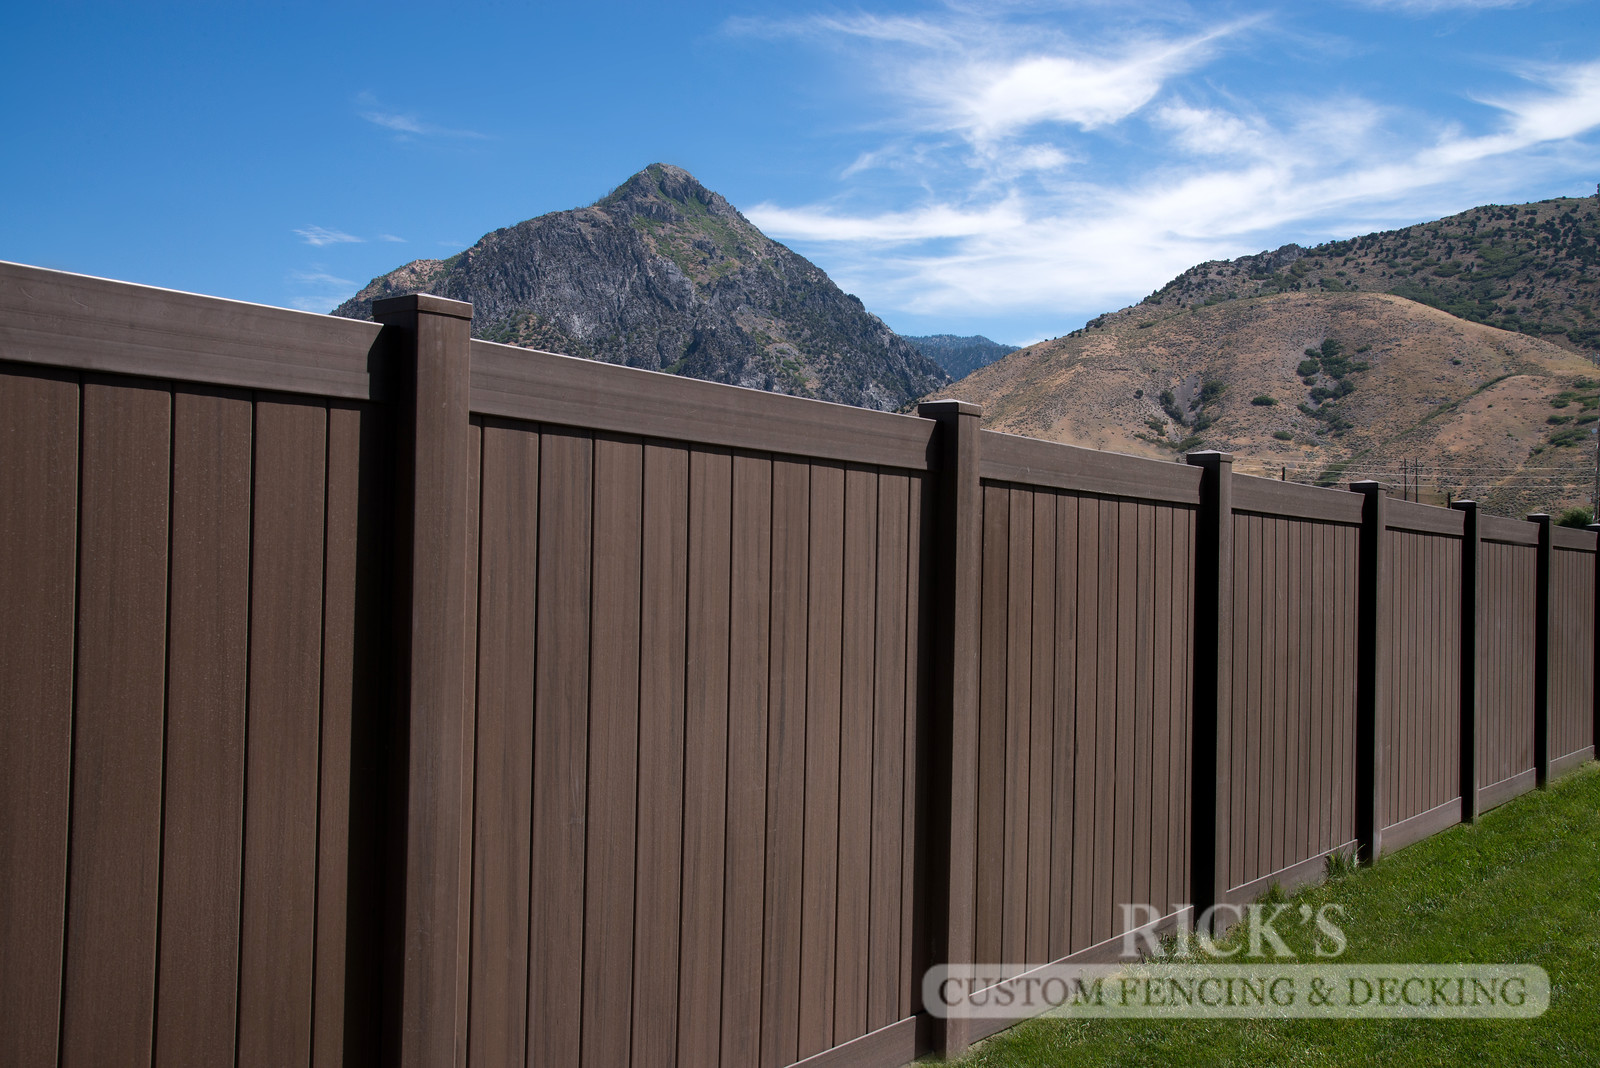 3031 - Vinyl Privacy Fencing